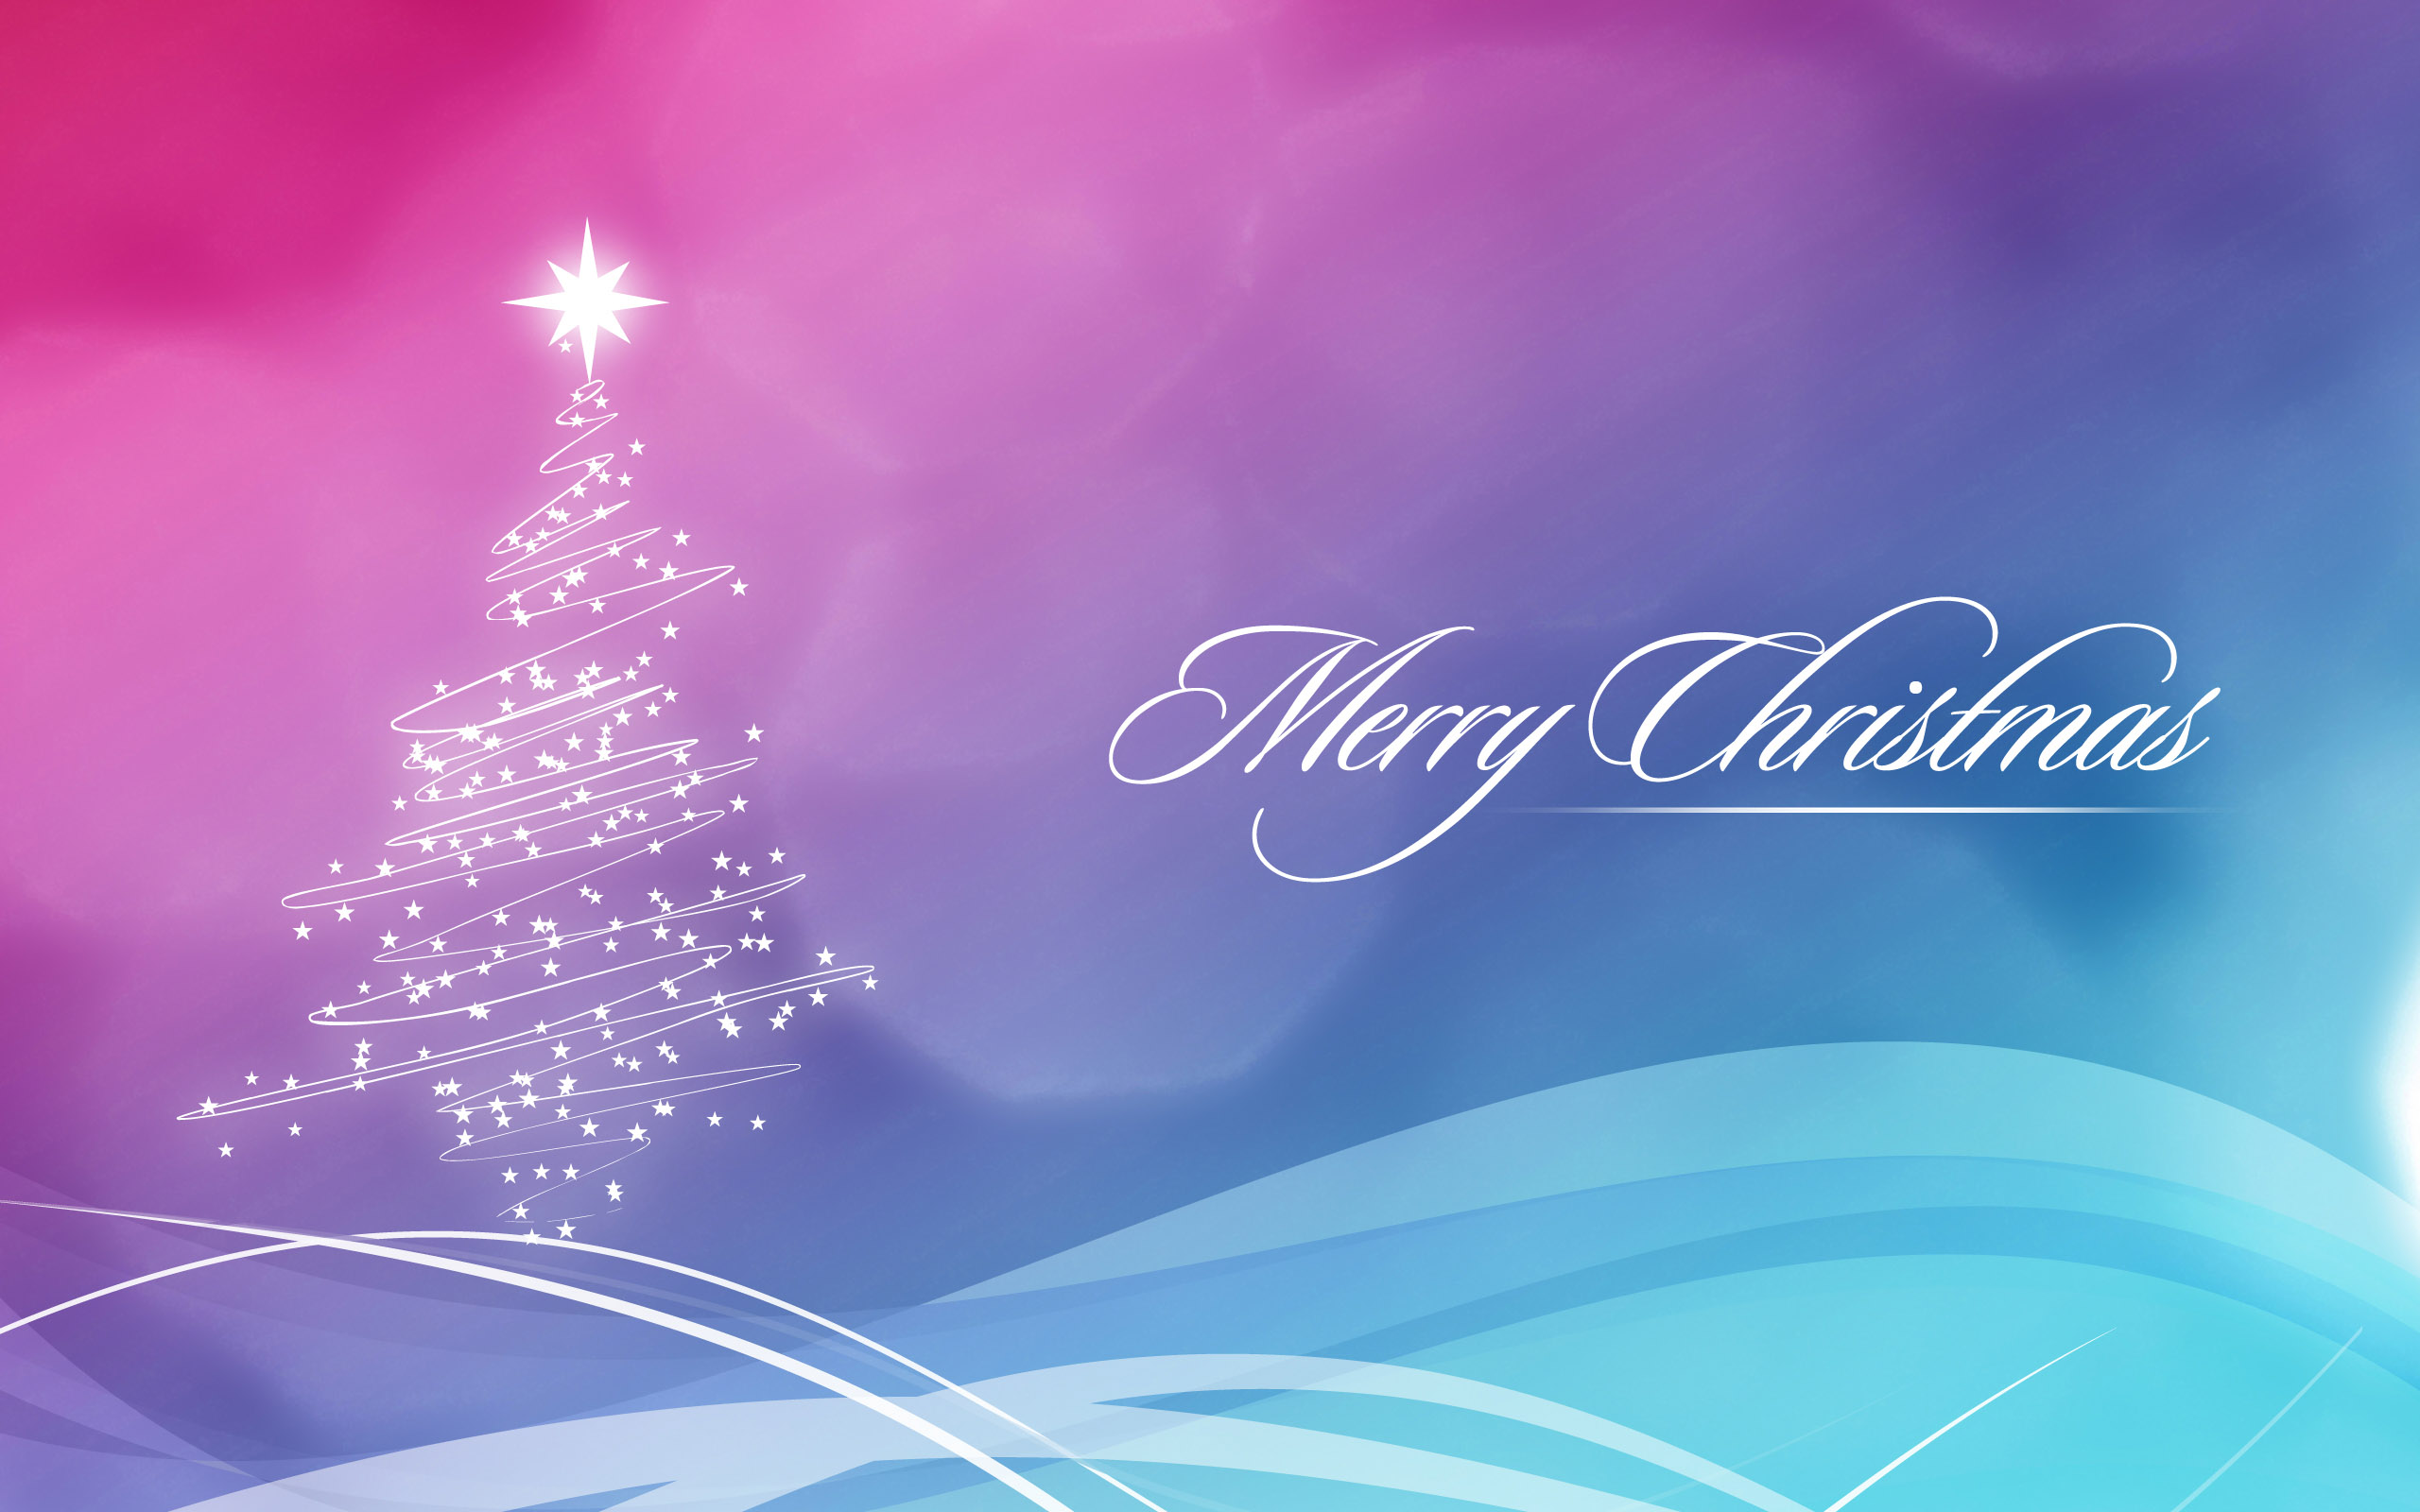 Merry christmas Wallpaper HD Desktop Background 2560x1600